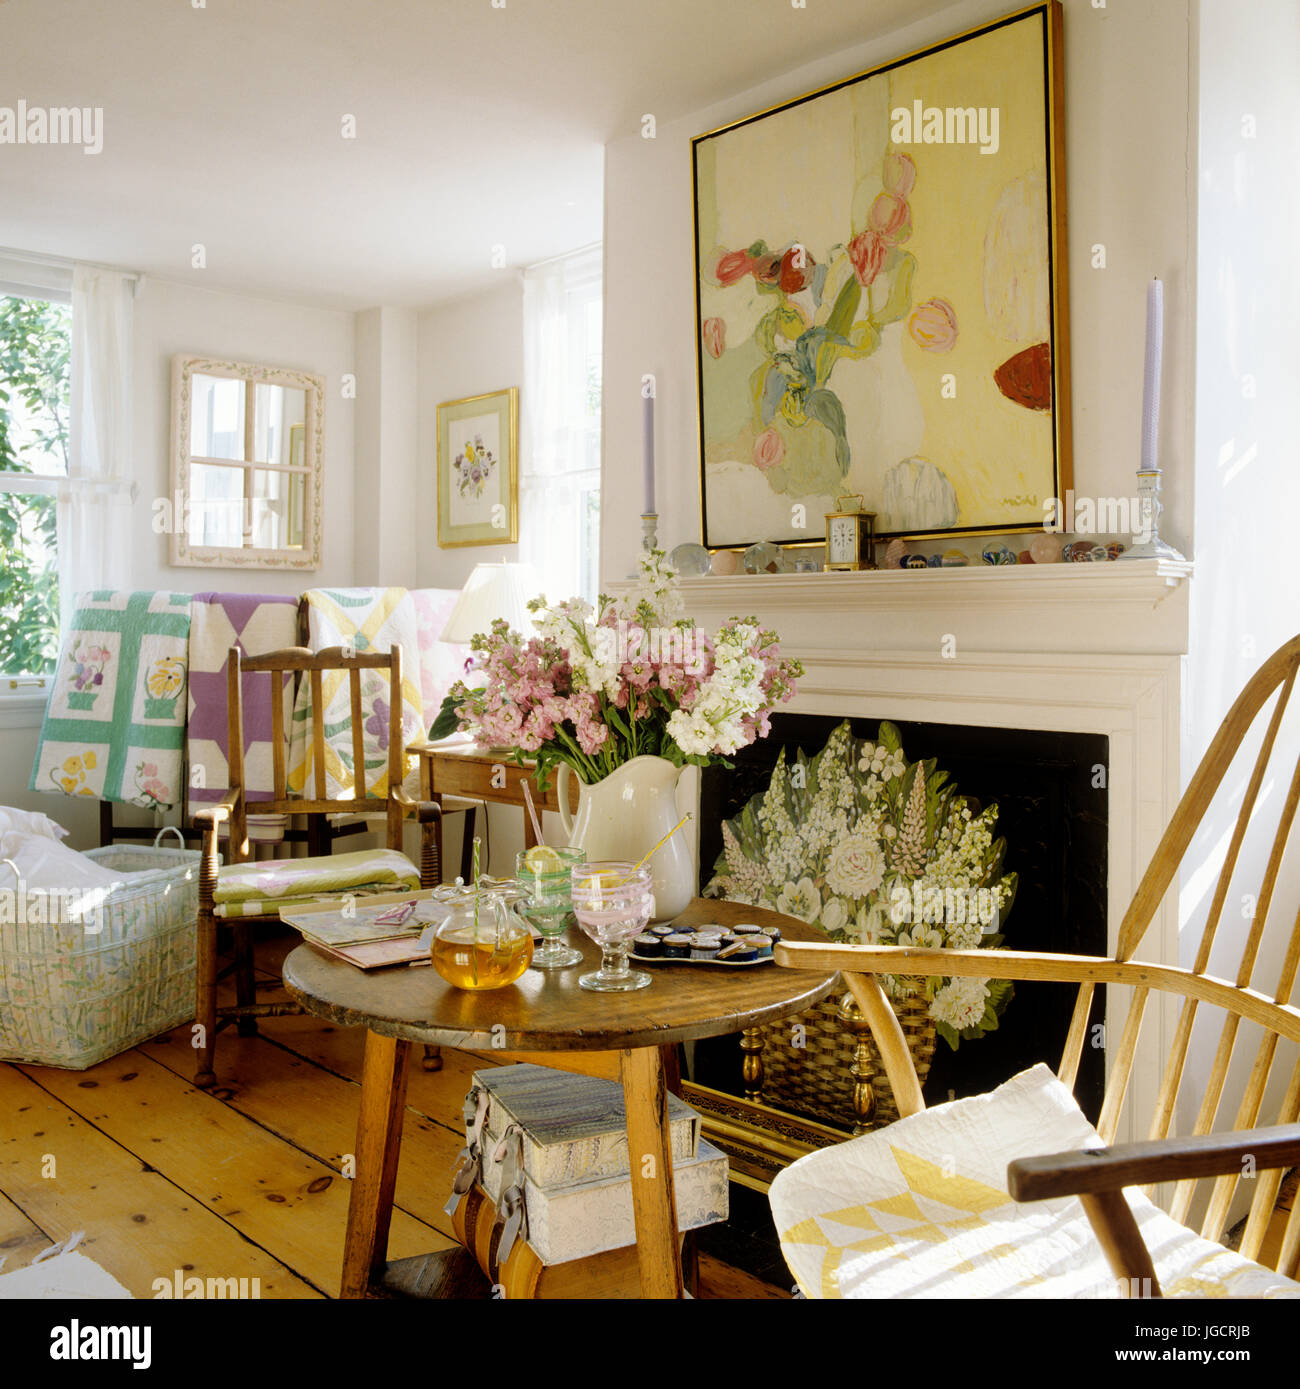 In stile country living room Immagini Stock